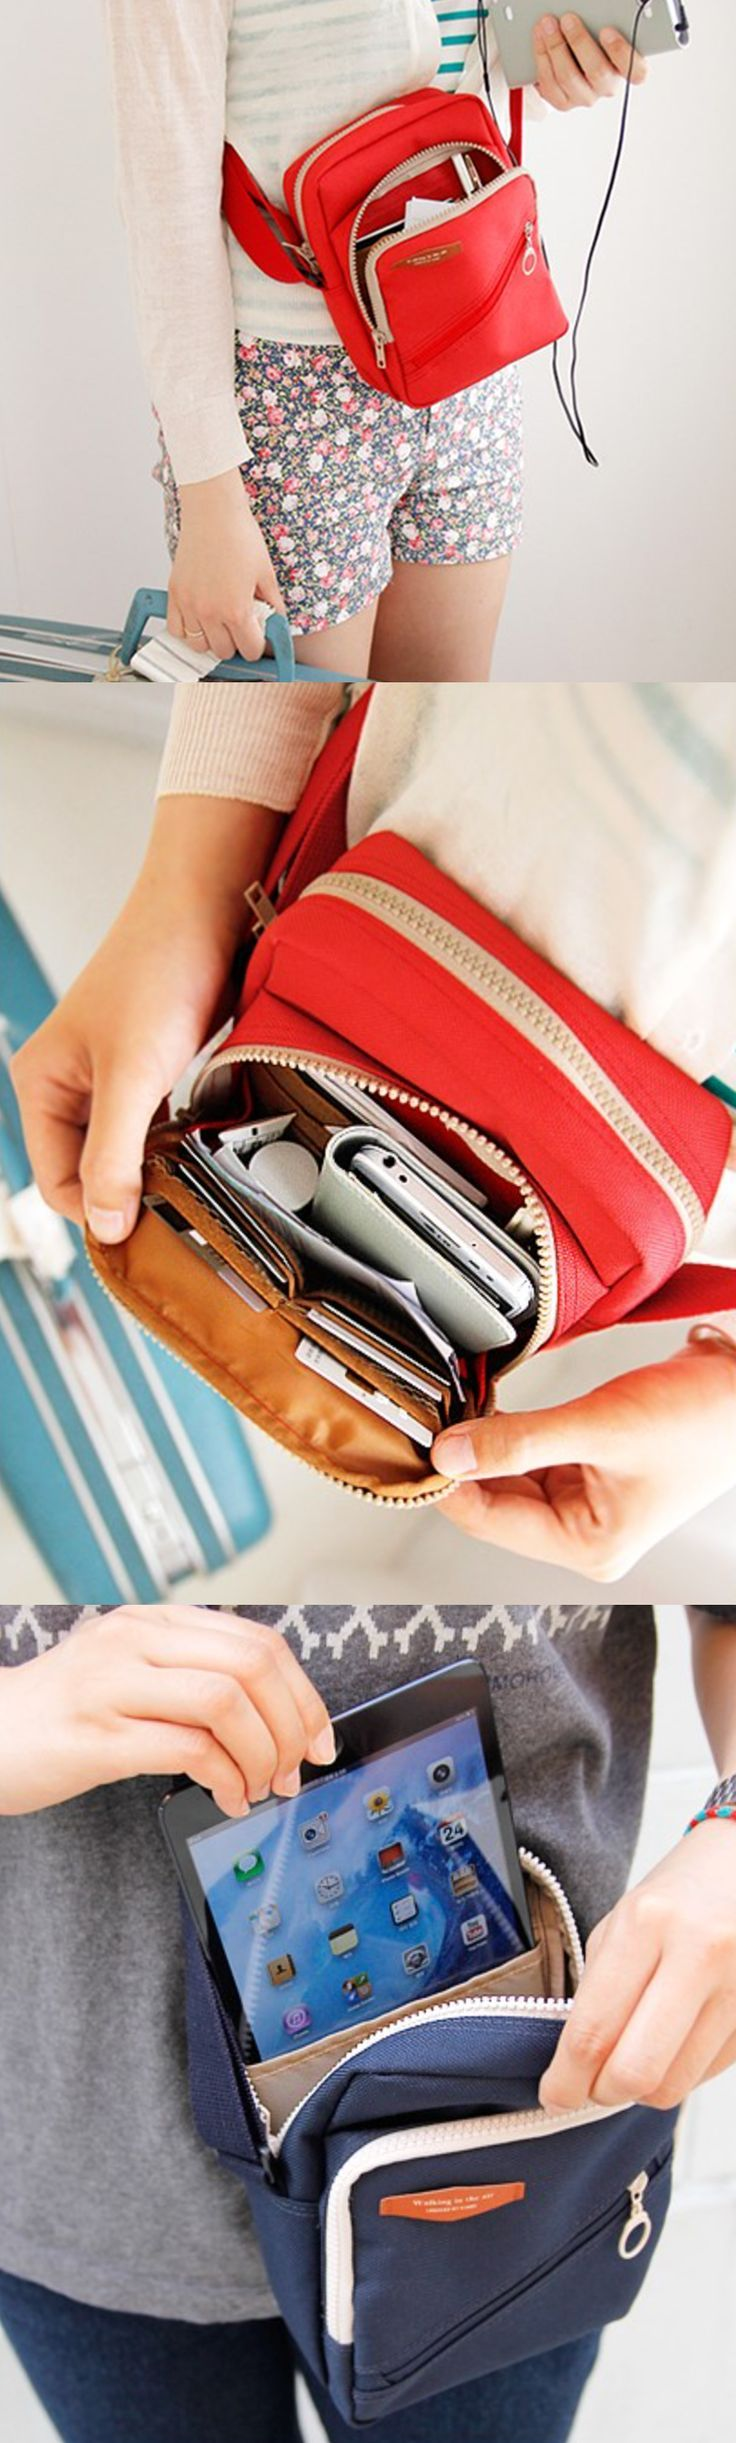 Keep all your tech safe and securely by your side on your travels! This bag is perfect for holding everything you'll need on the trip, from water bottles to phones to maps or journals. Now you just need the bus ticket! Book today with us at www.wanderu.com || #GoWanderu